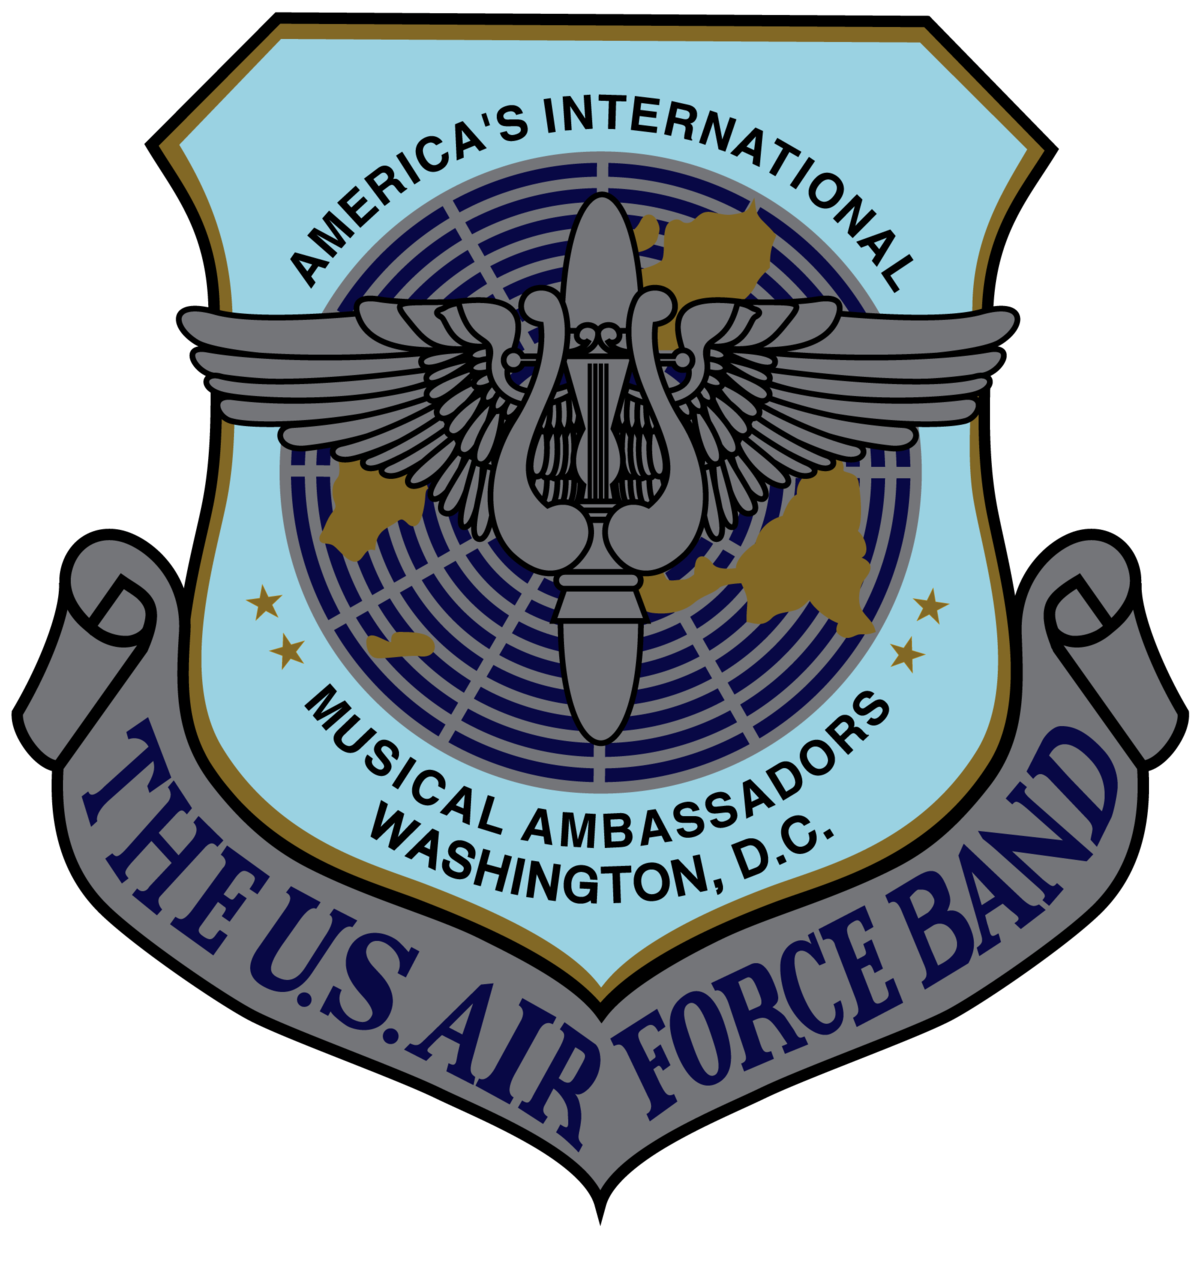 Parade clipart concert band. United states air force